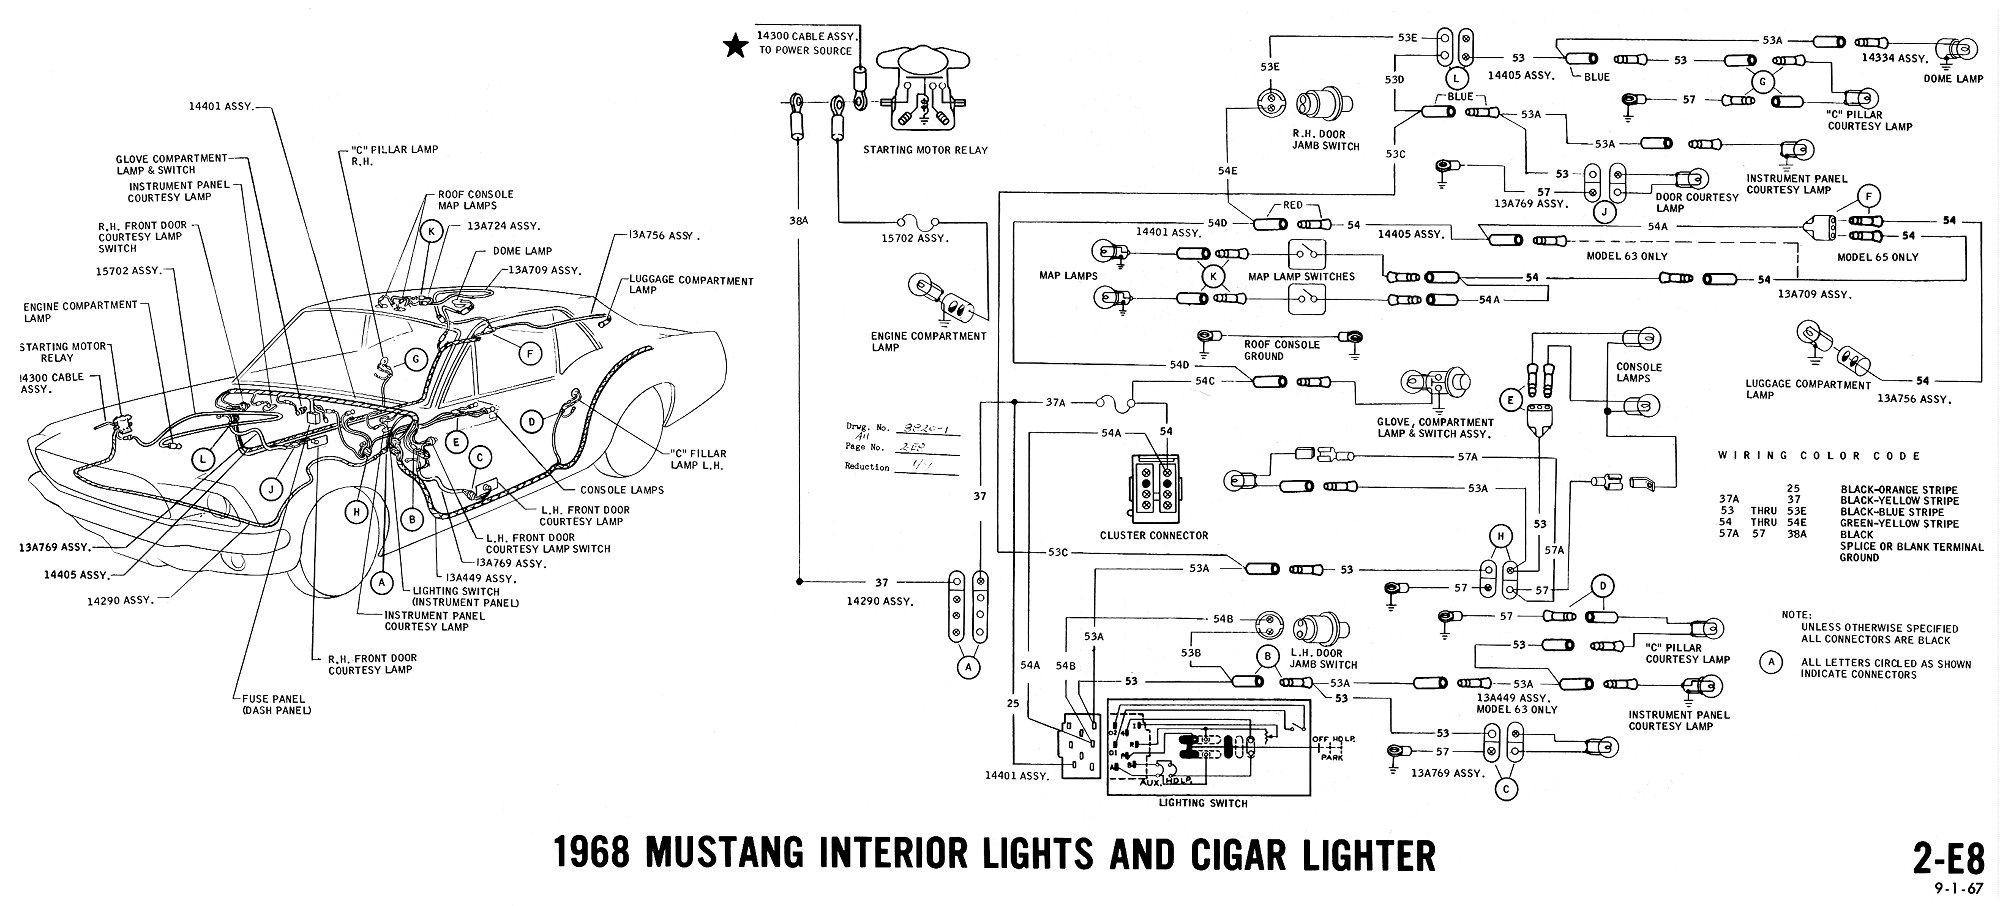 E8 1968 mustang wiring diagrams evolving software 67 cougar turn signal wiring diagram at gsmx.co